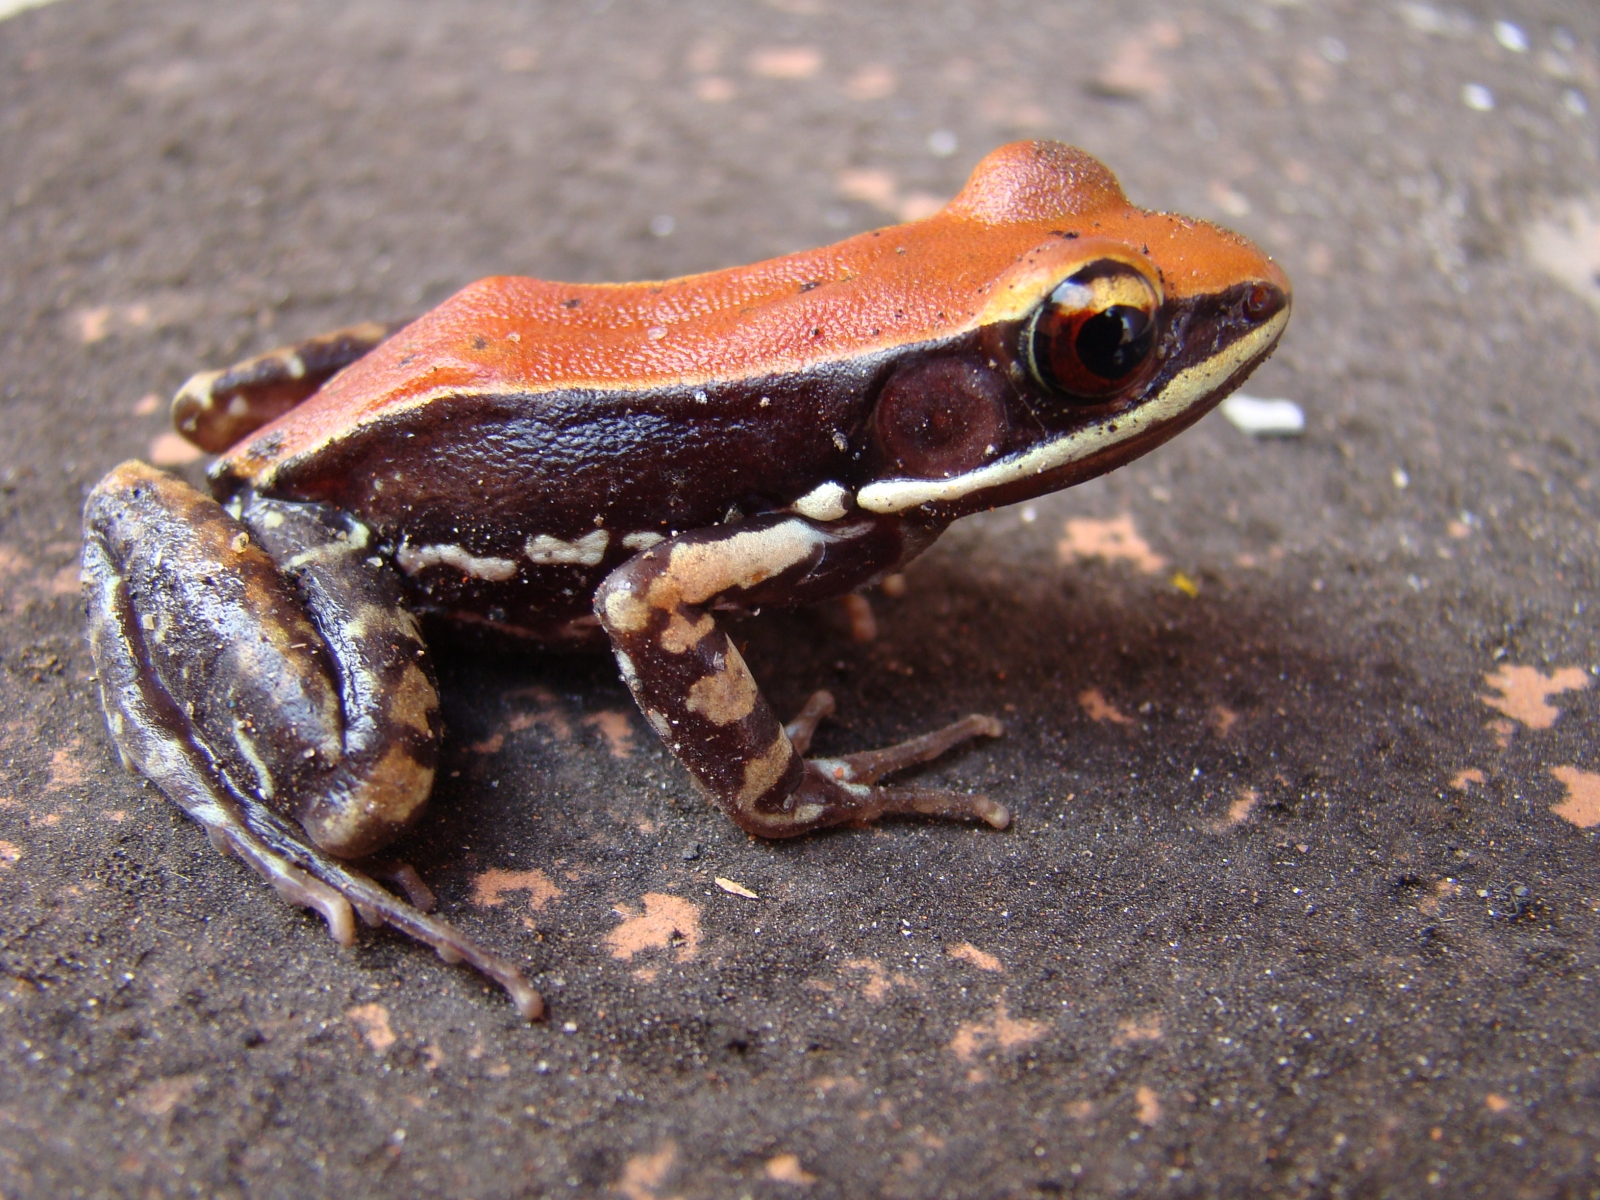 This Frog's Slime Could Help Kill The Flu Virus